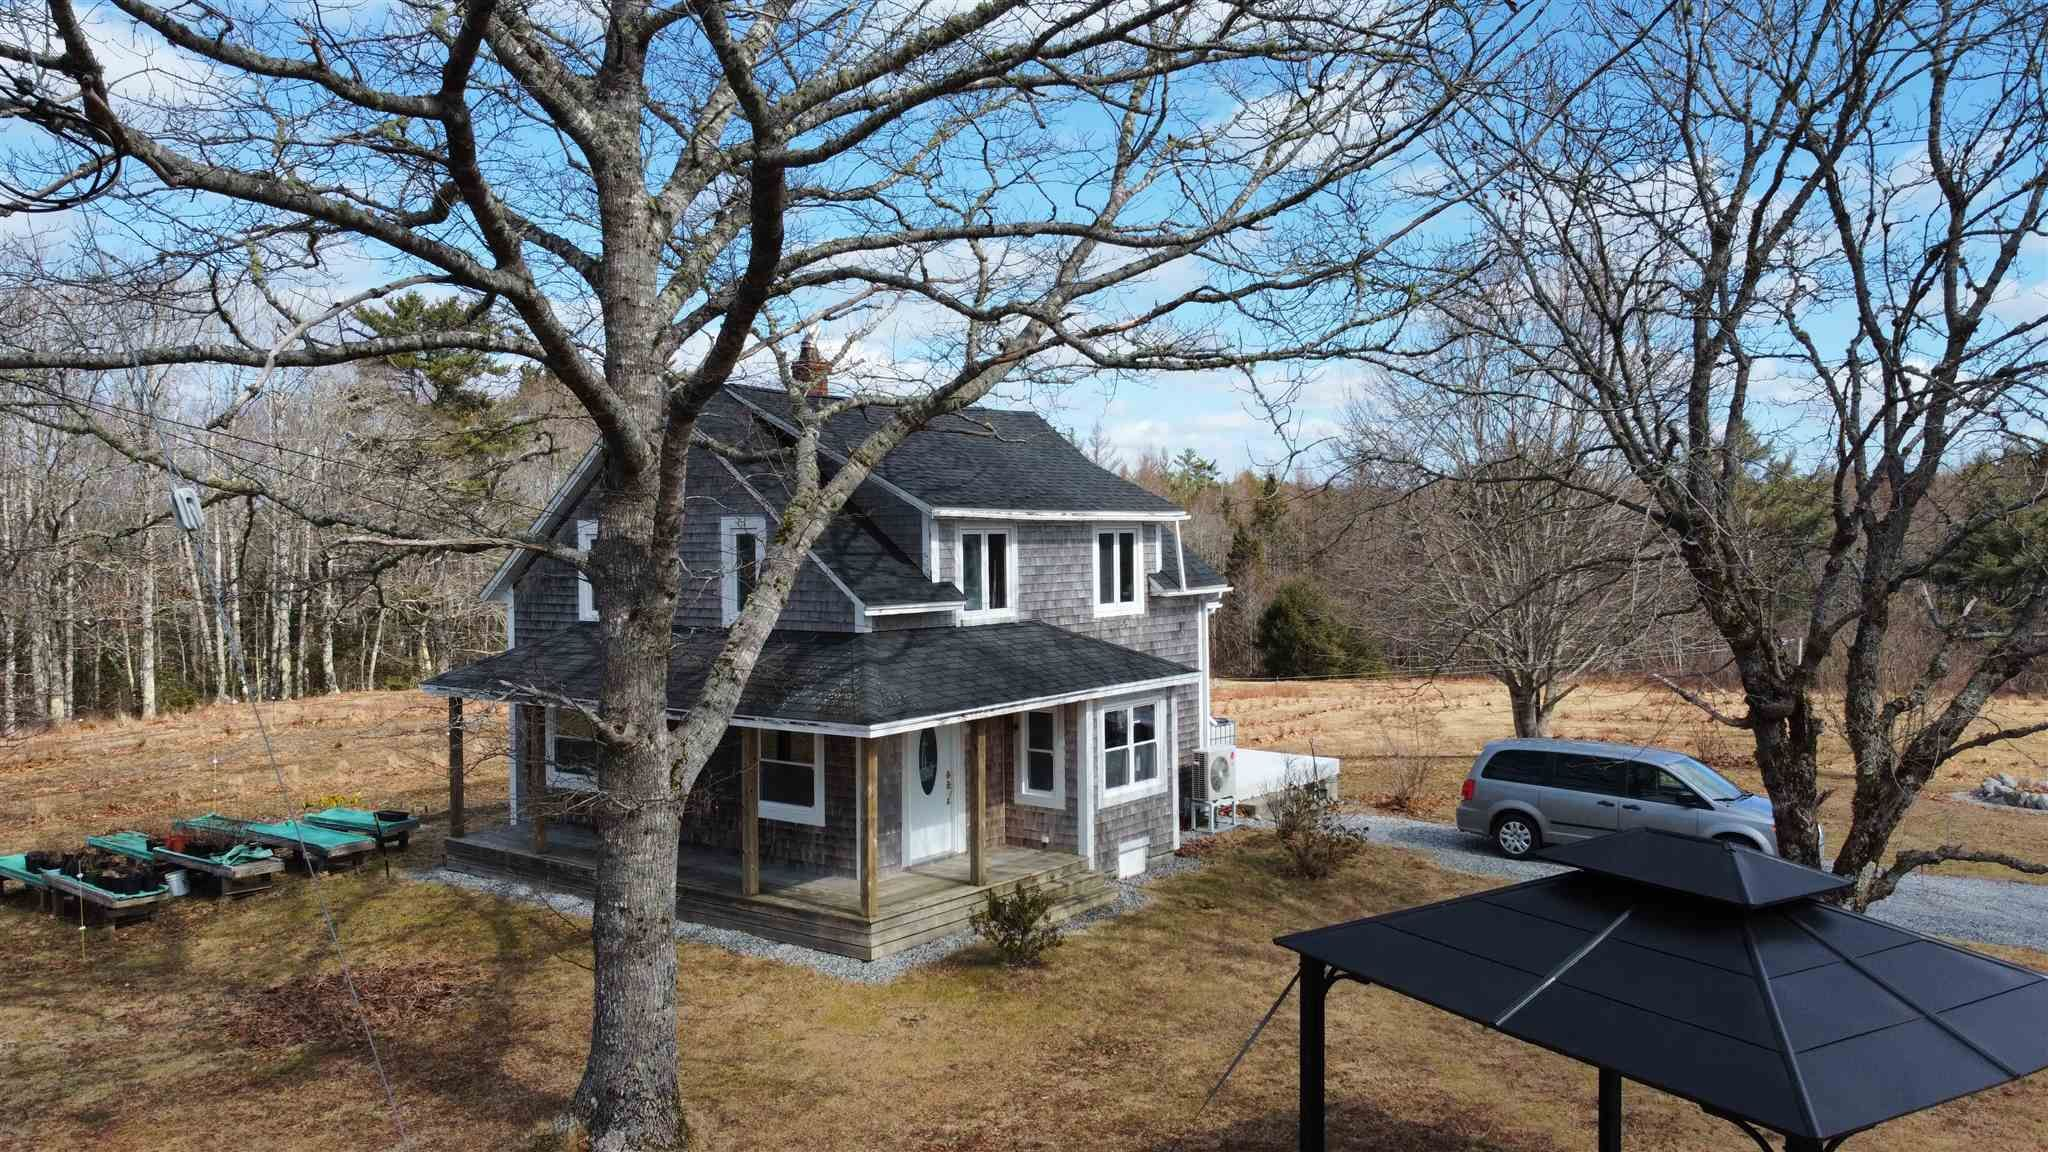 Main Photo: 465 Highway 3 in Sable River: 407-Shelburne County Residential for sale (South Shore)  : MLS®# 202105286